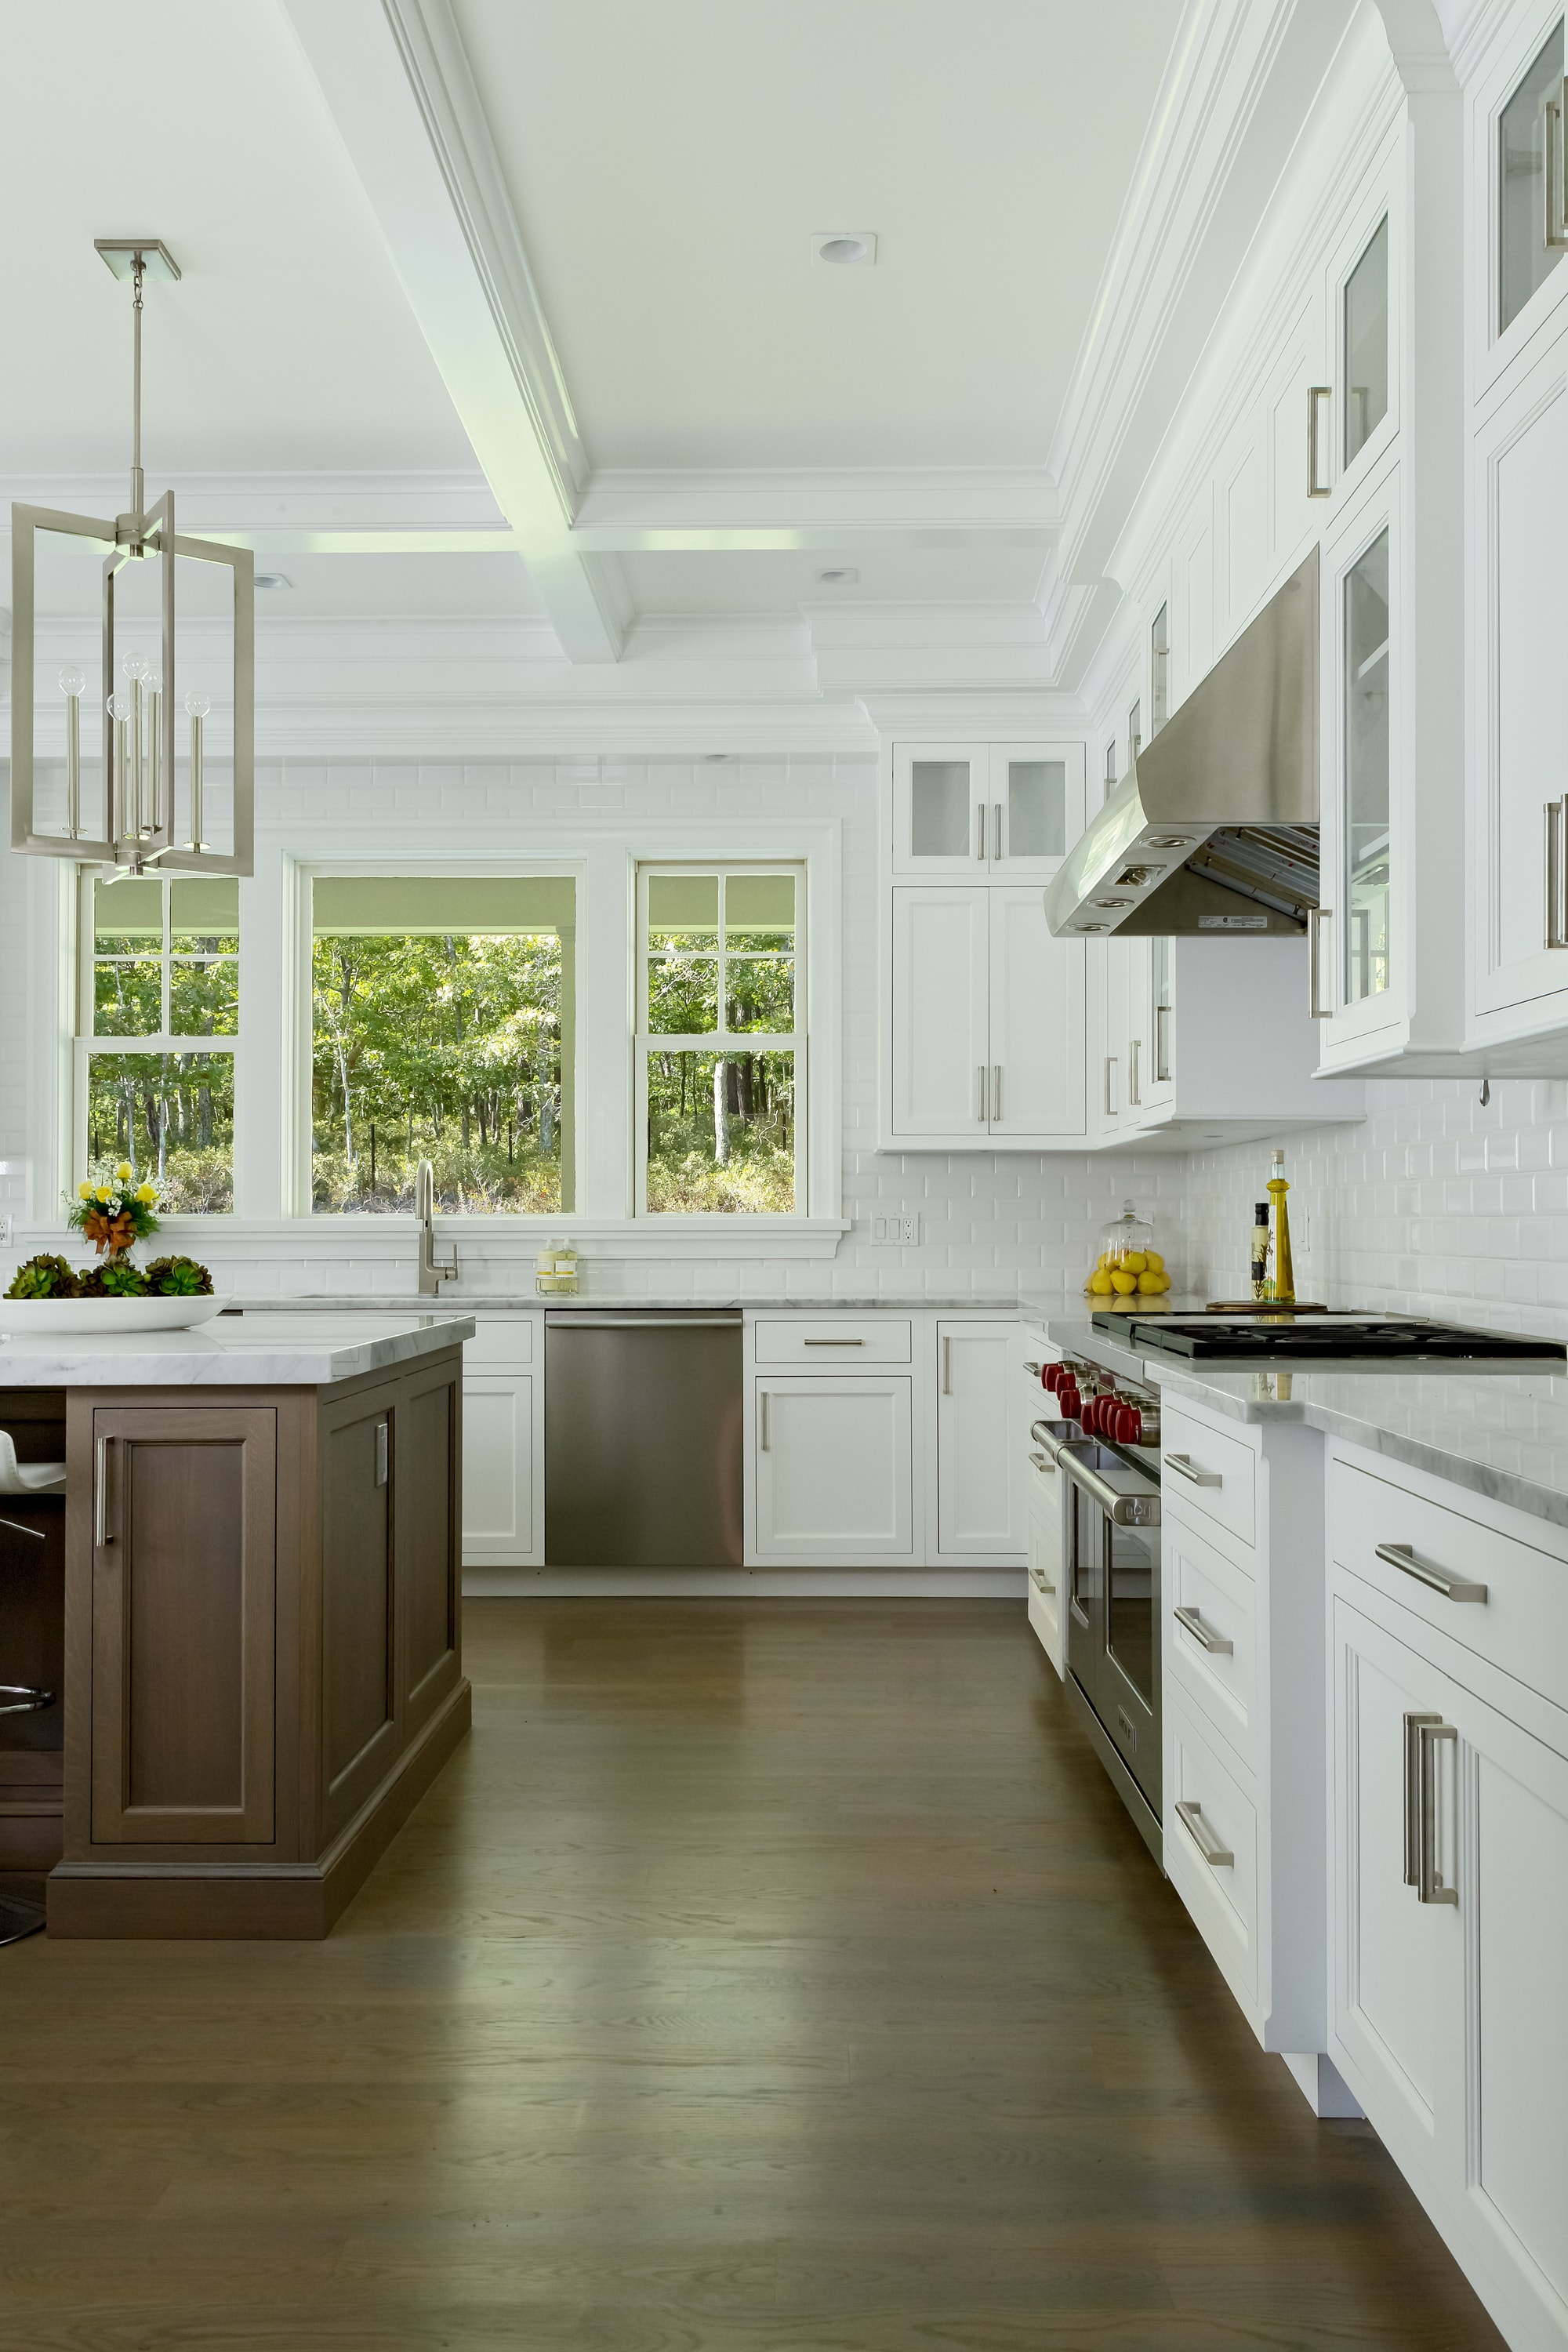 Copy of Transitional style kitchen with bay windows